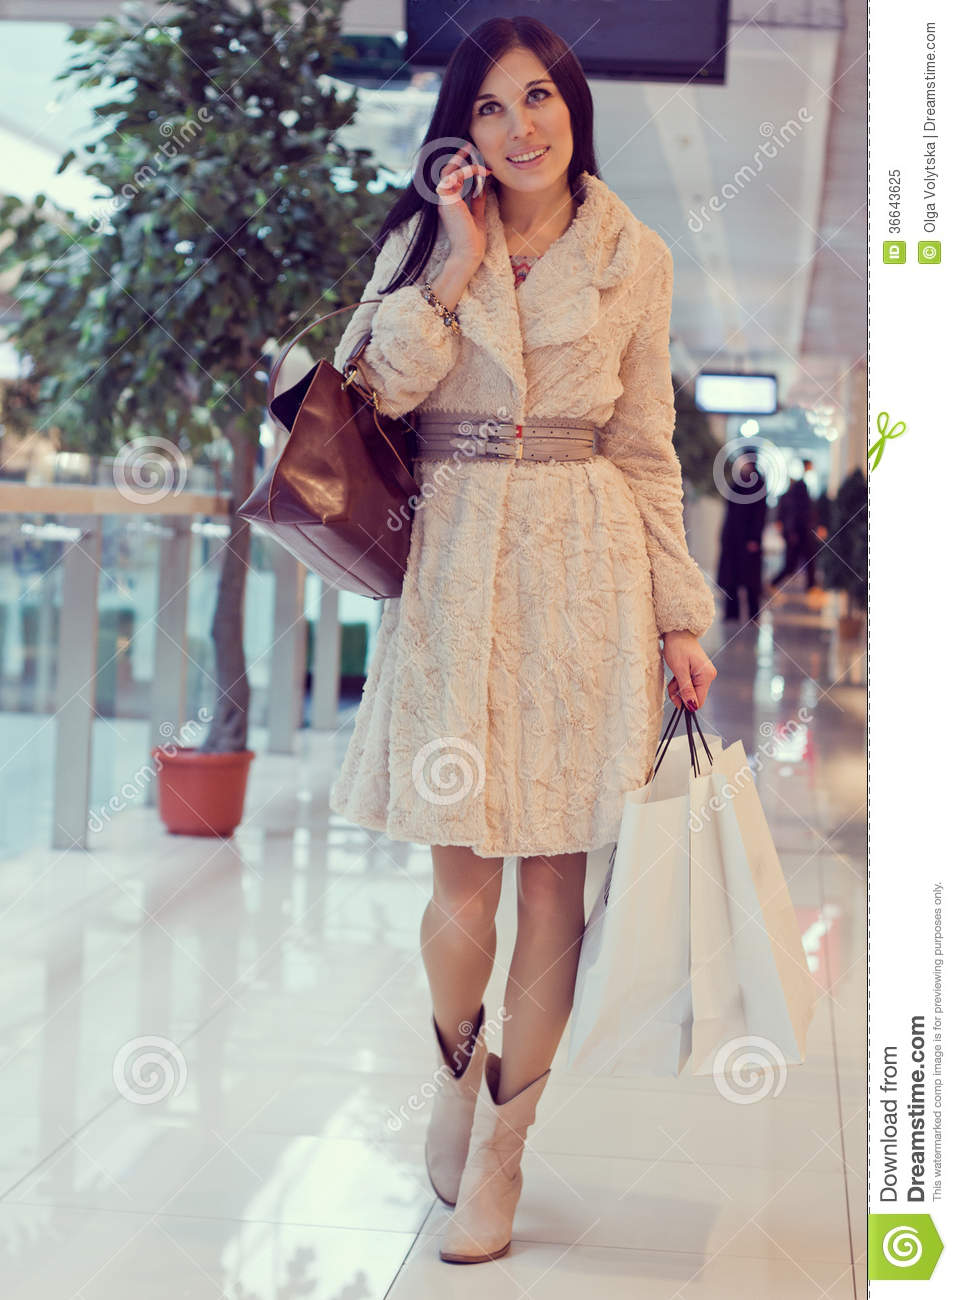 Girl in the shopping centre with shopping bags